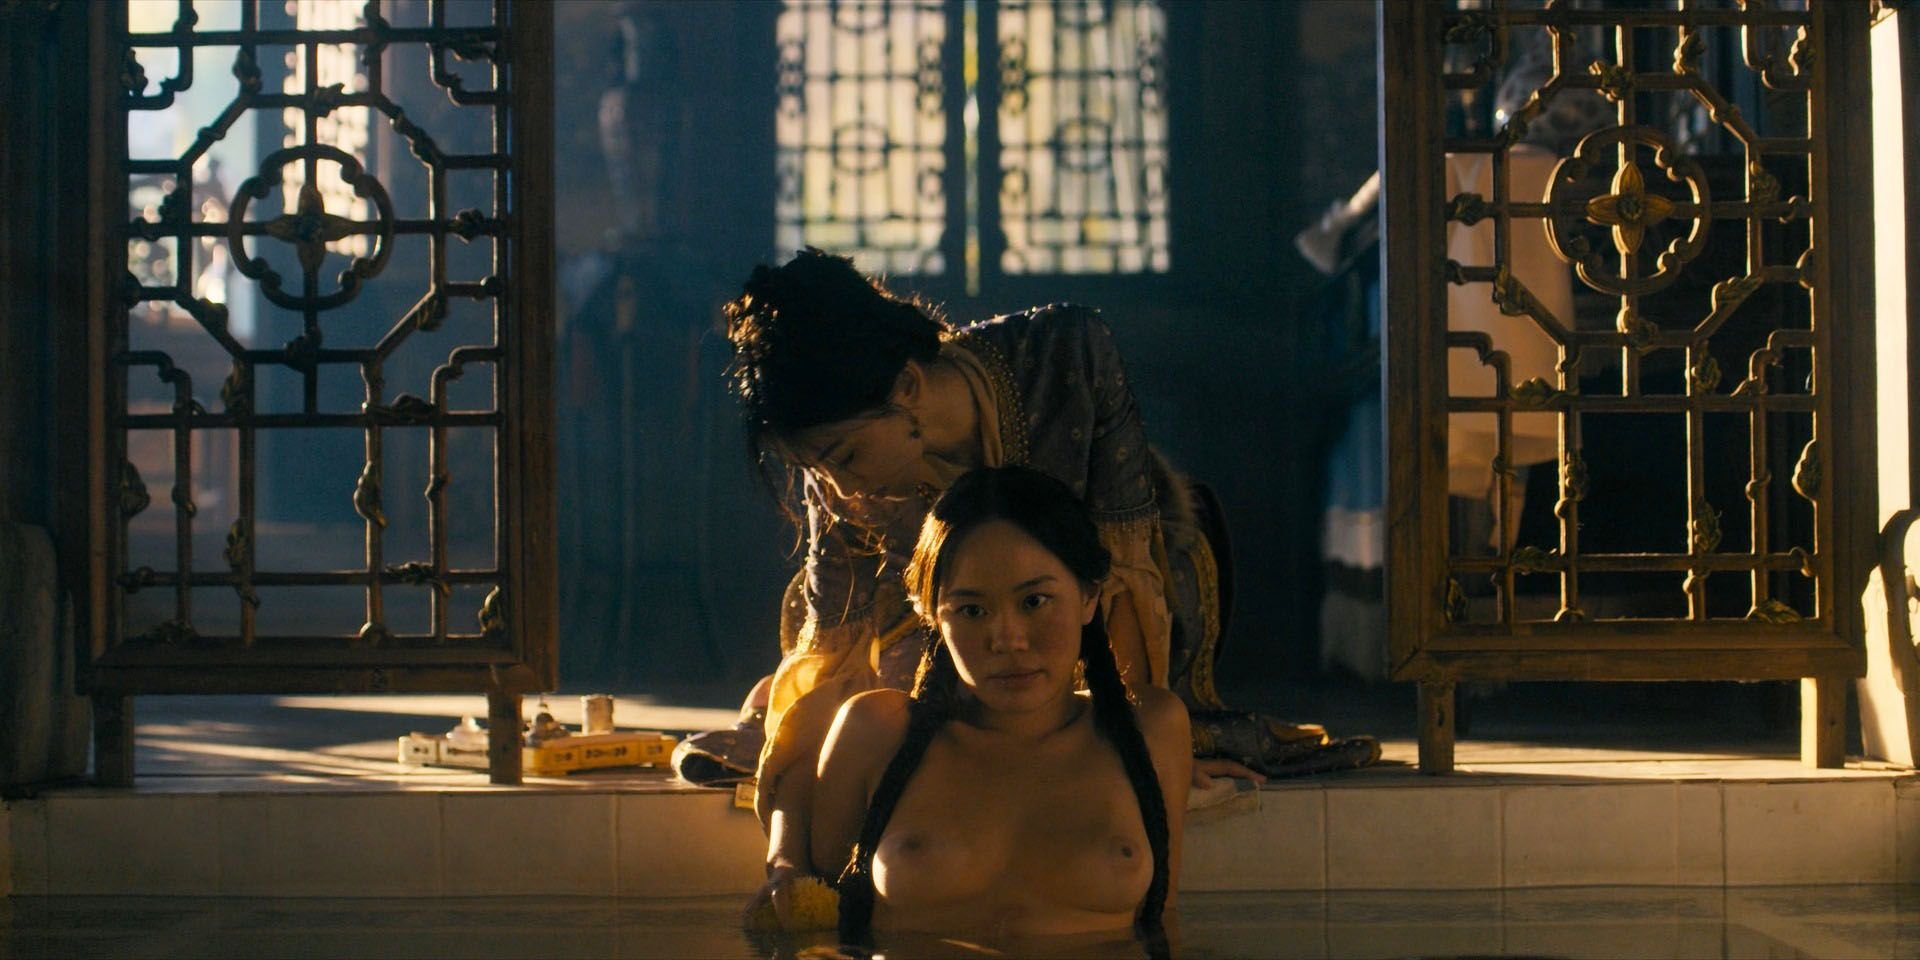 Olivia cheng in marco polo s1e34 - 2 part 1